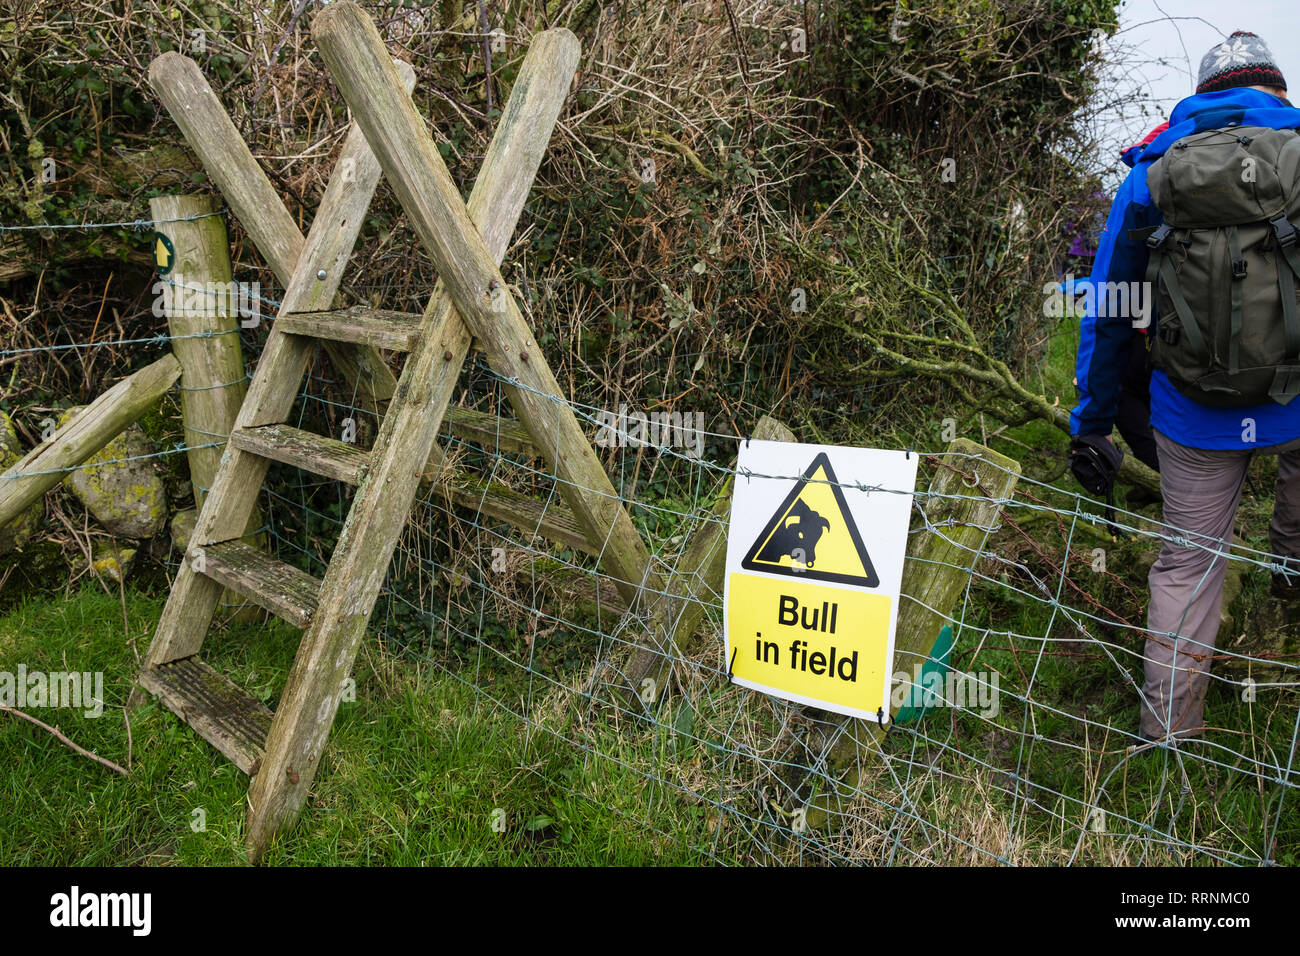 Bull in Field unlawful sign on fence by stile on a public footpath through a farm field. Moelfre, Isle of Anglesey, Wales, UK, Britain - Stock Image